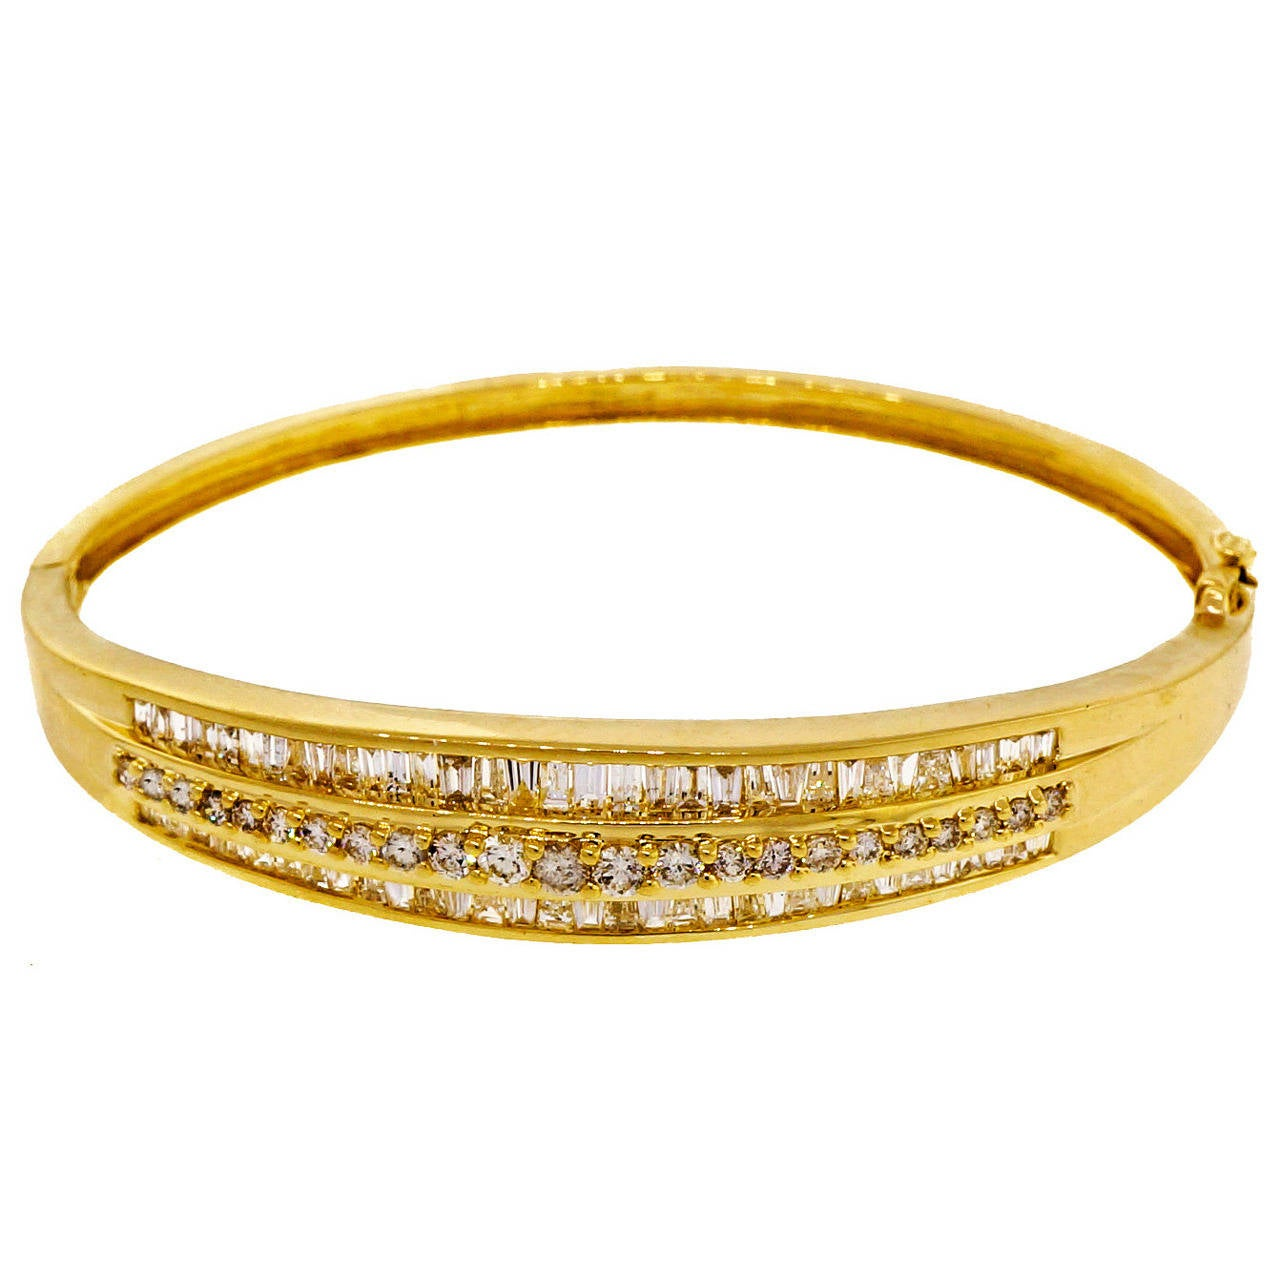 1.66 Carat Baguette Round Diamond Hinged Gold Bangle Bracelet 1